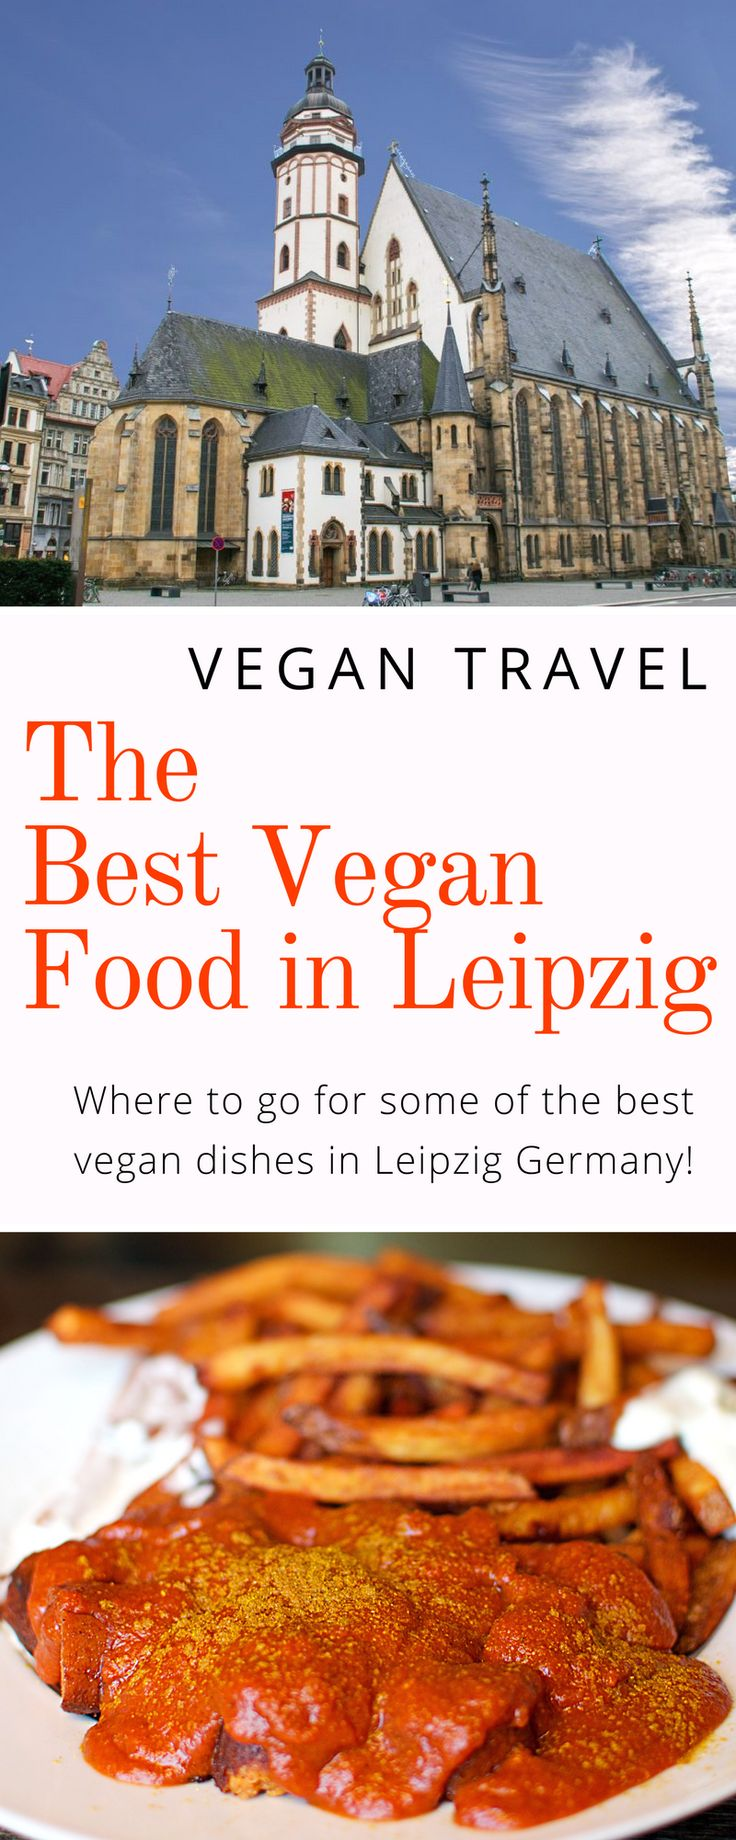 Vegan Travel Guide: The best vegan food in Leipzig, Germany! Vegan fine dining, sushi, pizza, Currywurst, cake, and more! Plus, where to stay in Leipzig!